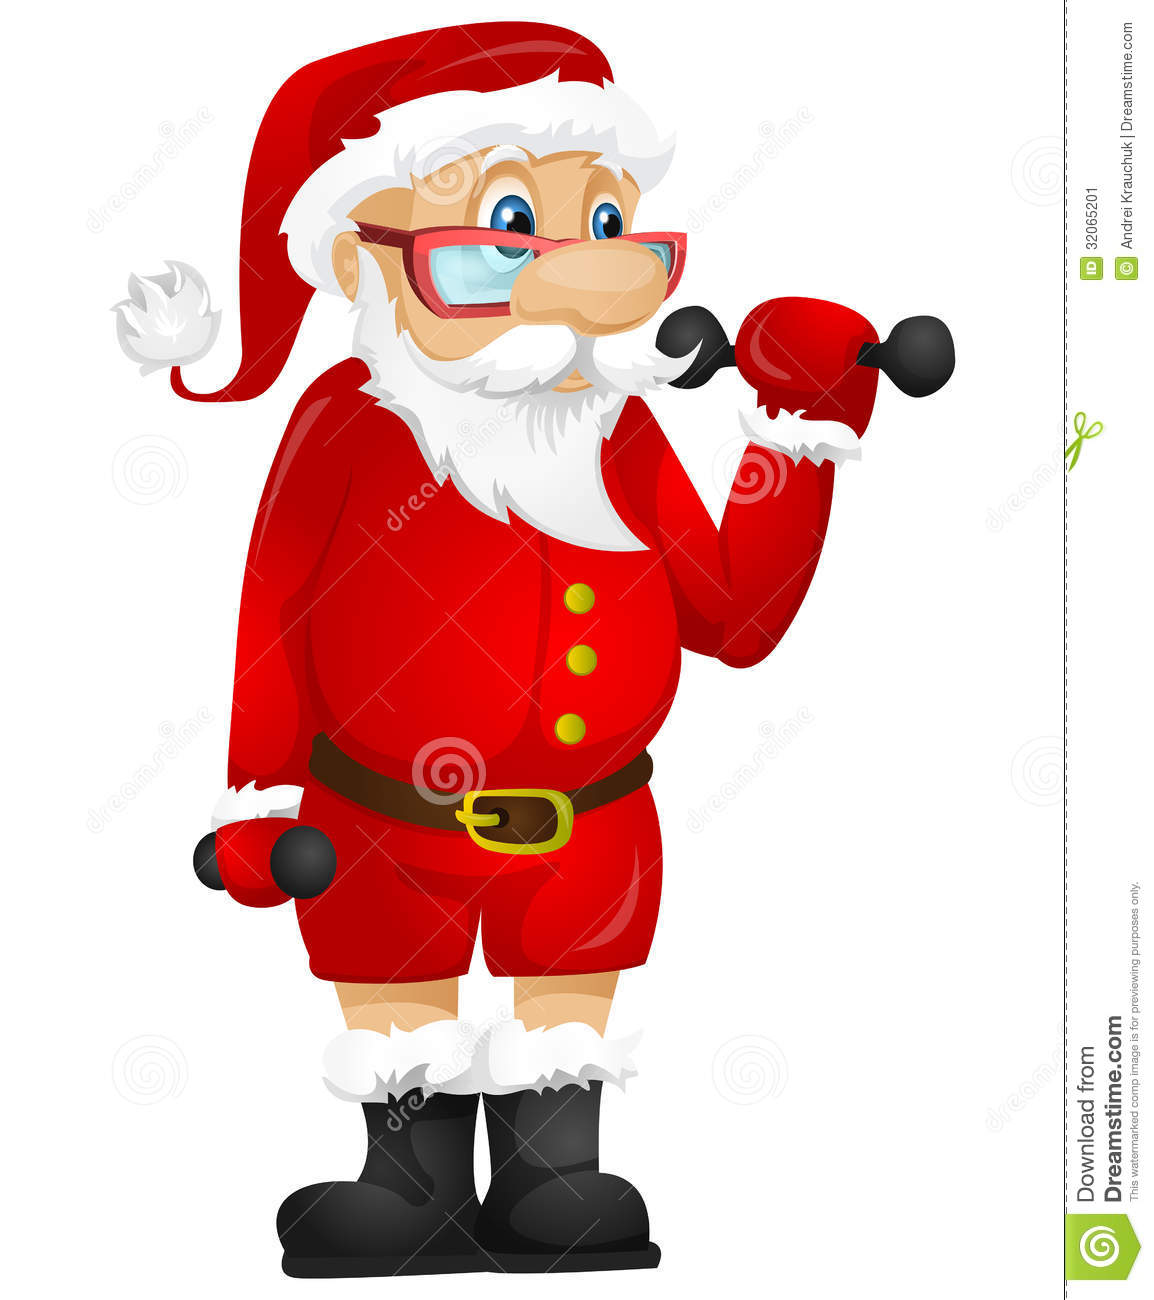 Santa Claus stock vector. Image of muscle, building ...